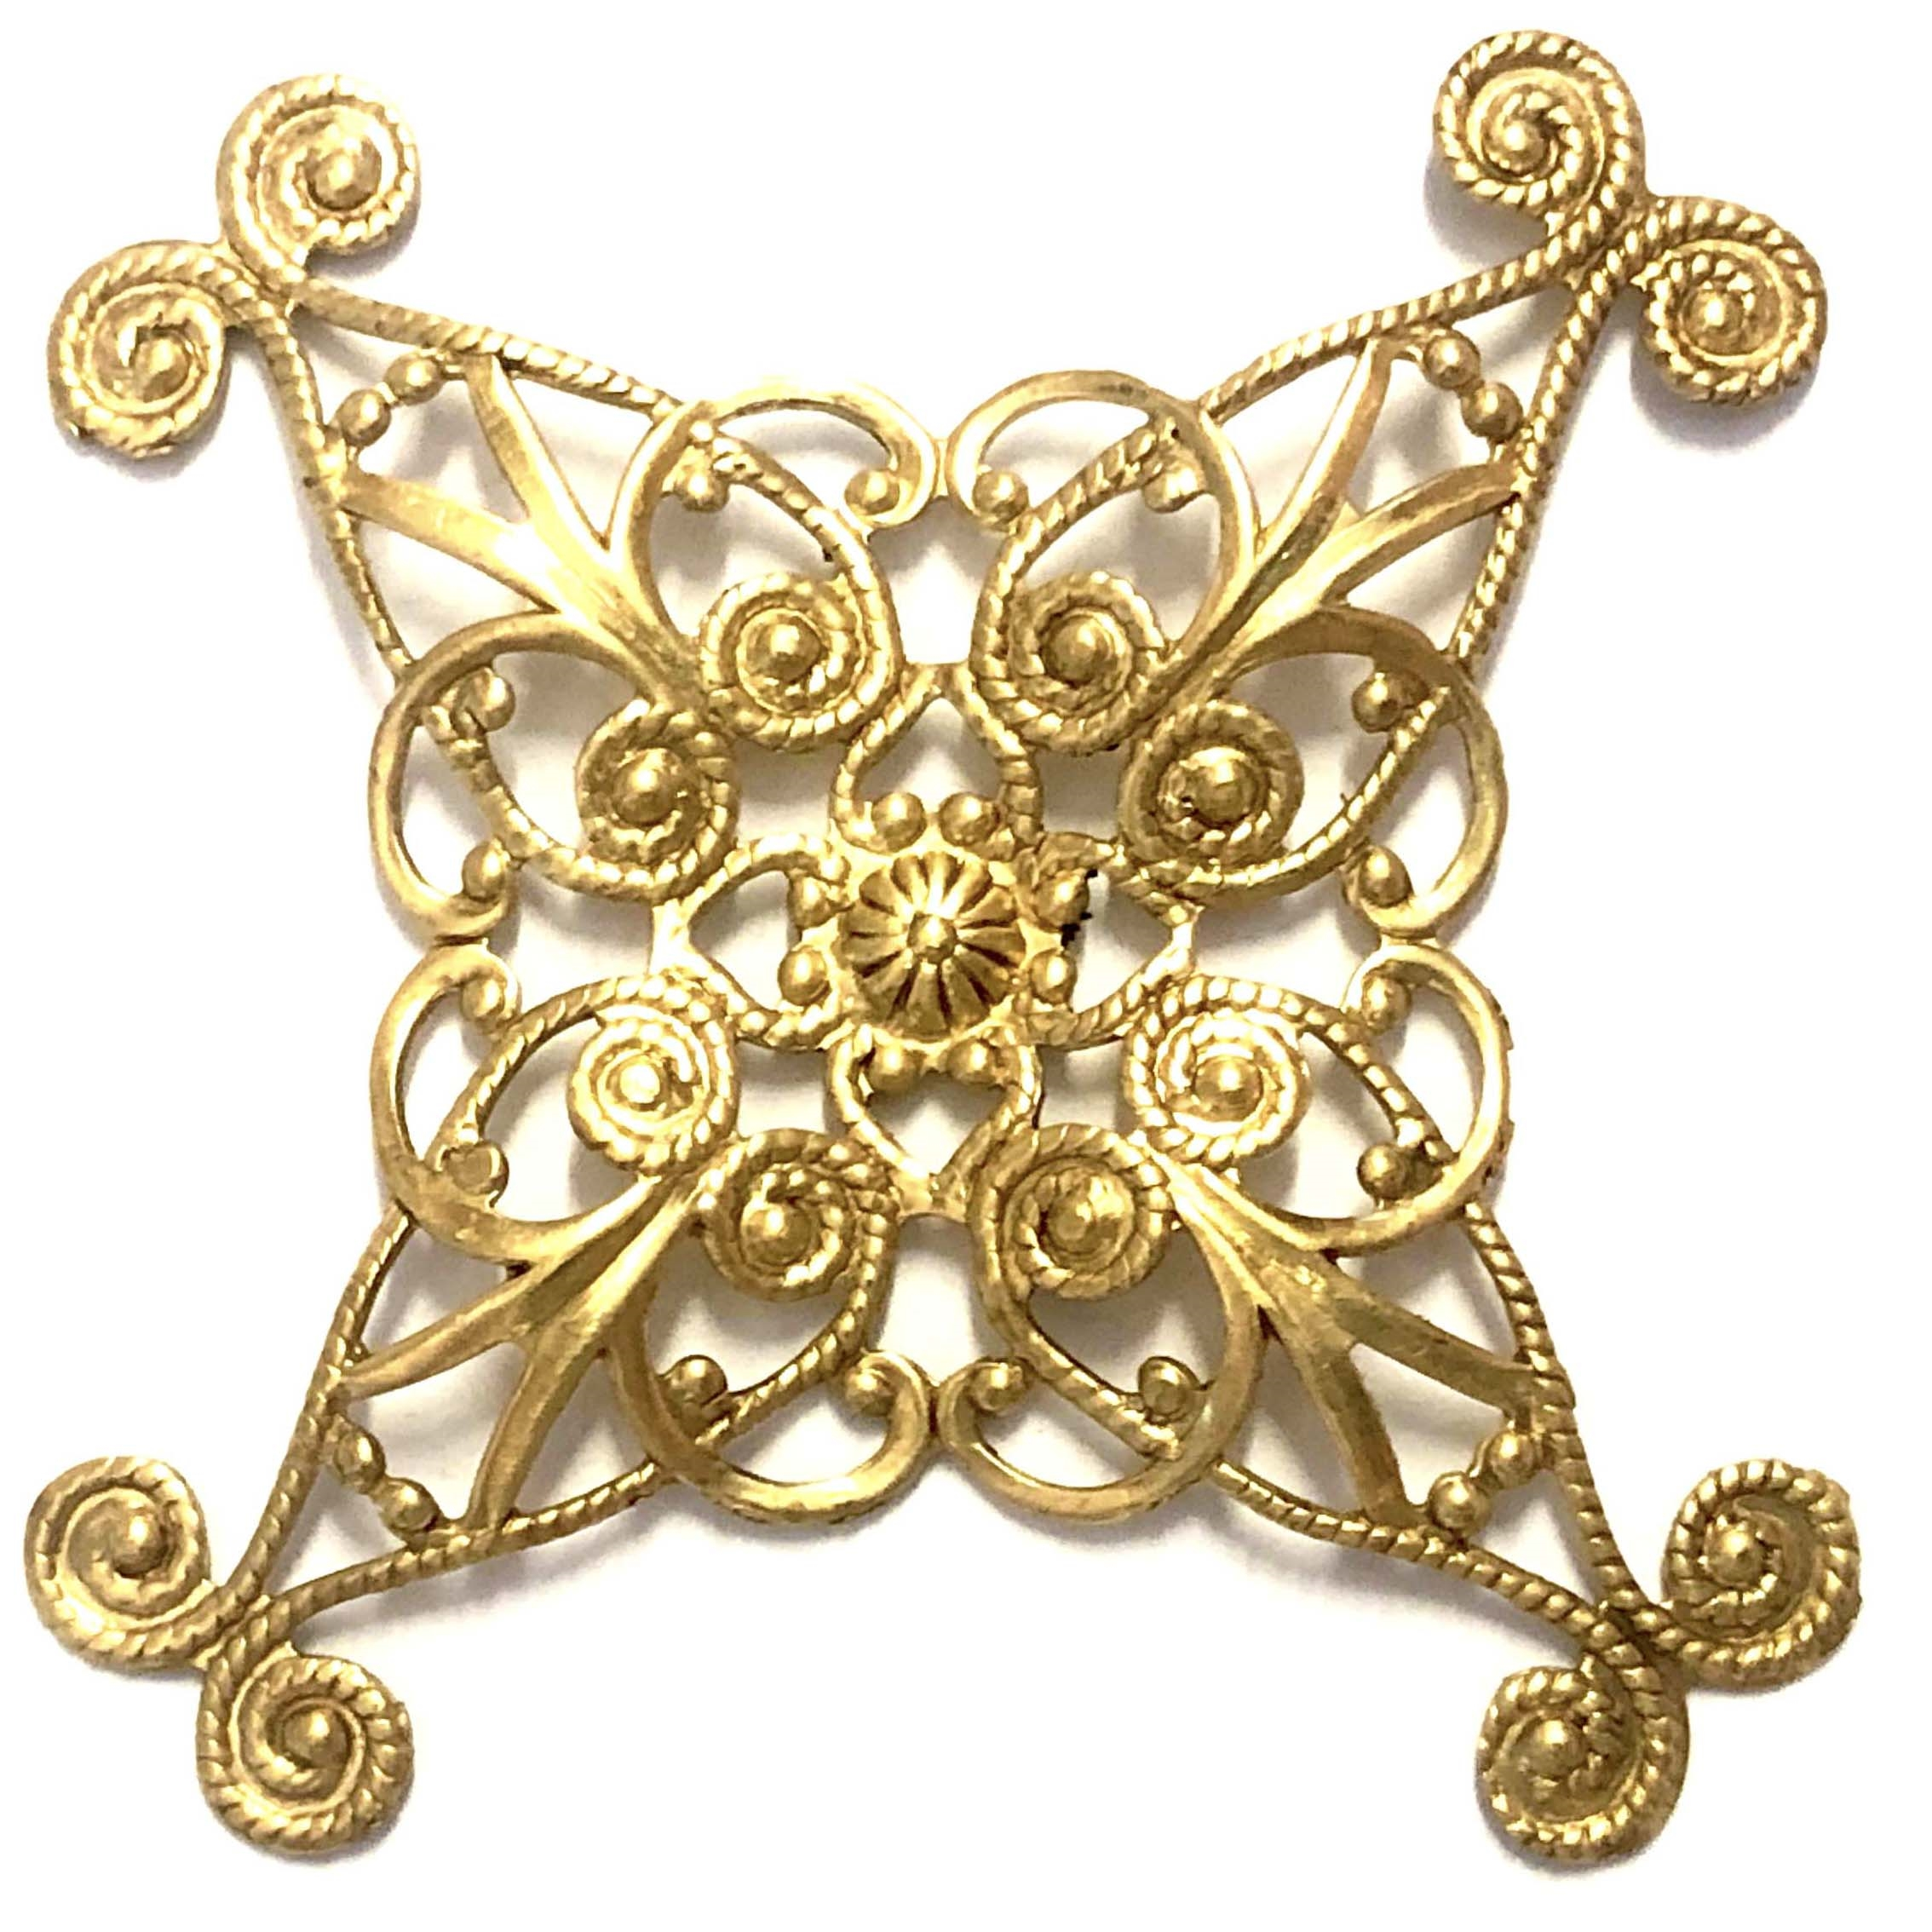 Victorian brass filigree,vintage jewelry supplies